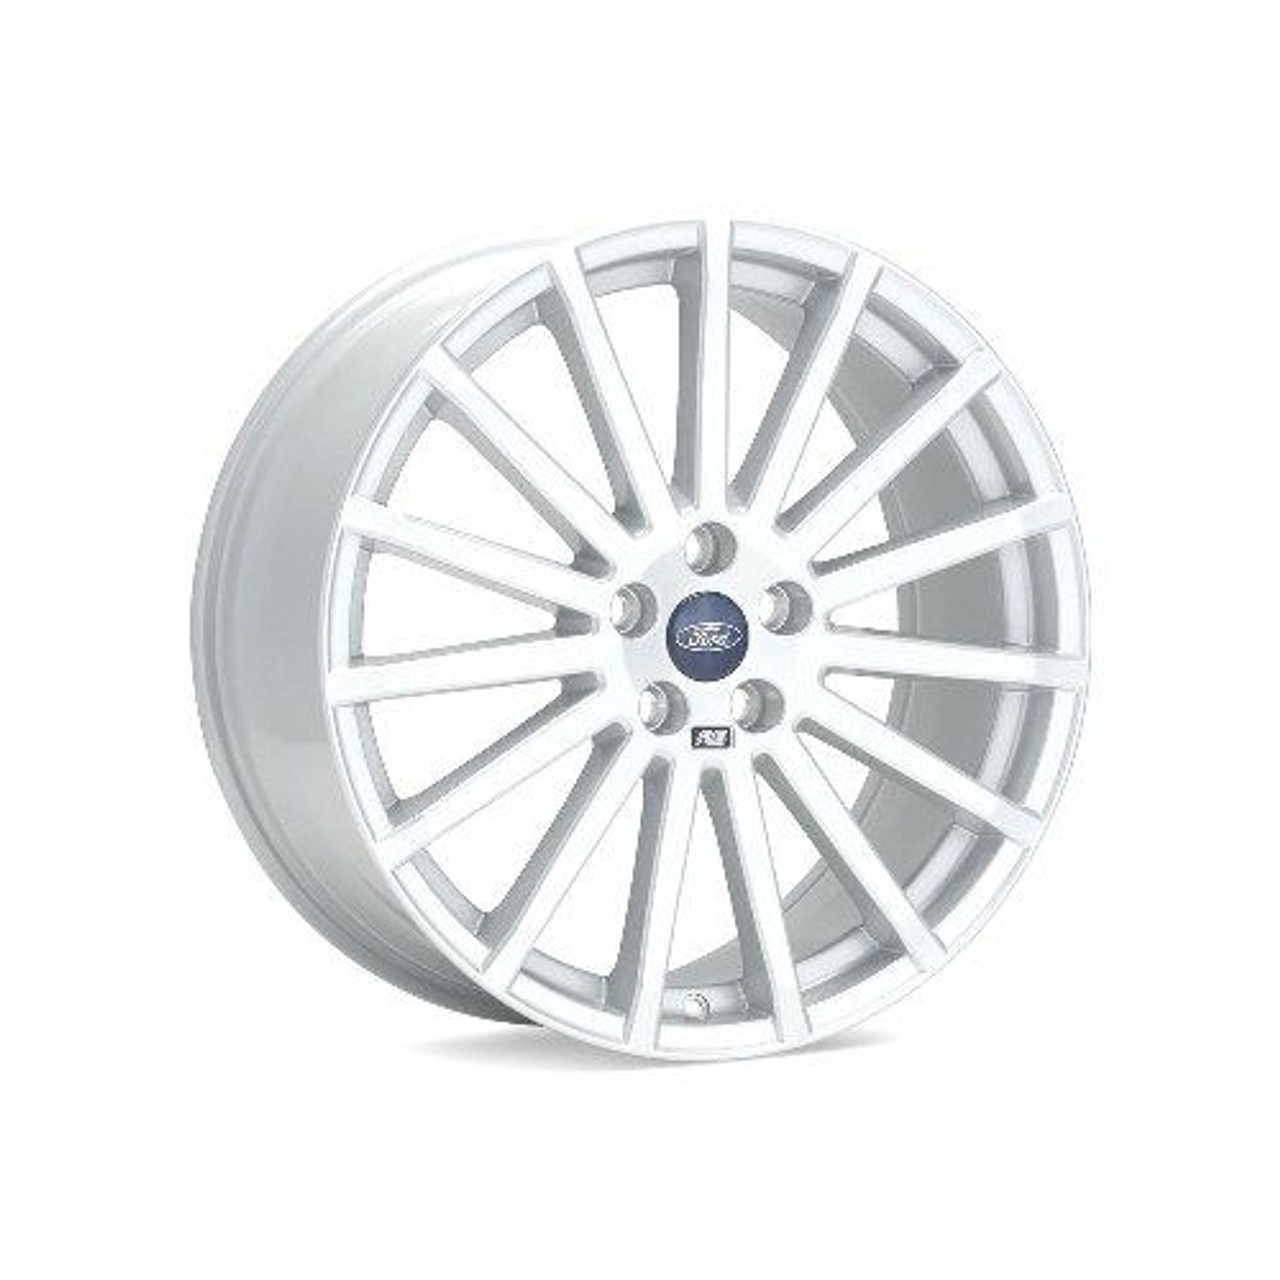 ford racing focus rs wheels for 2013 16 focus st st250 m 1007 r1985w white